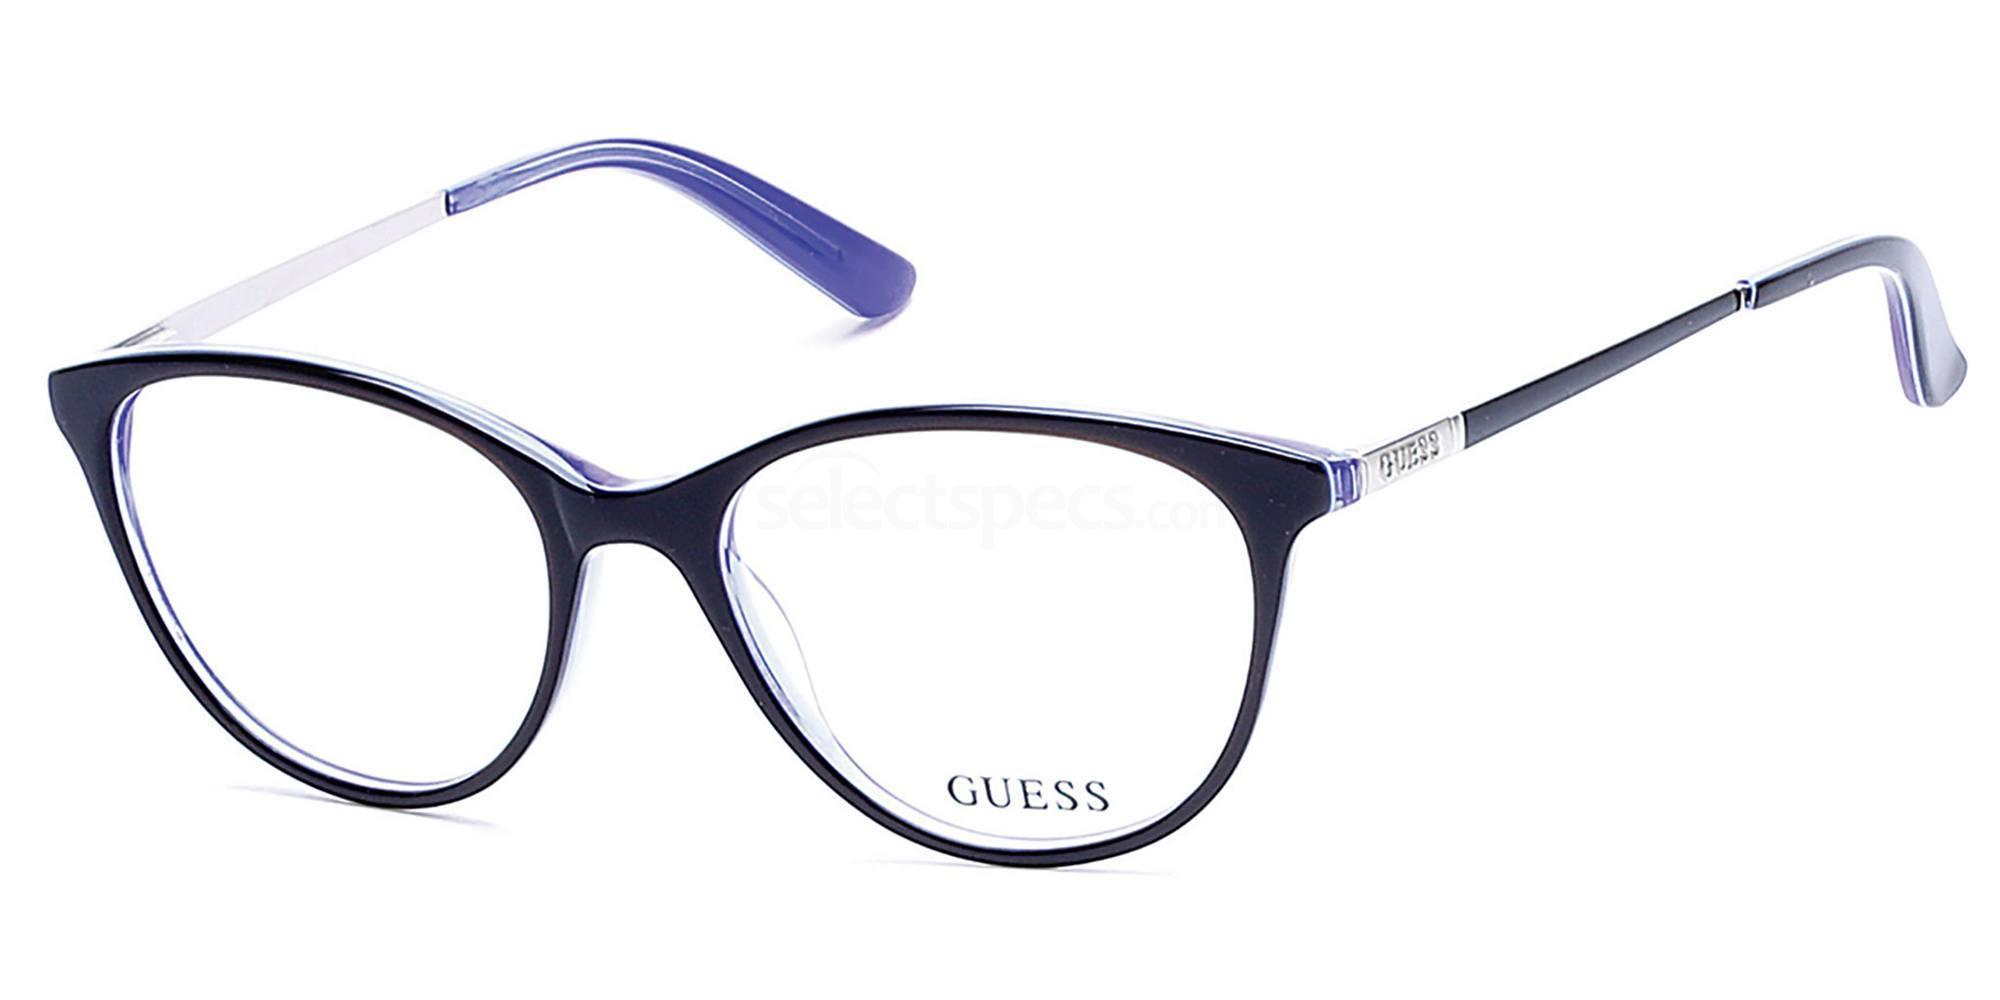 001 GU2565 Glasses, Guess